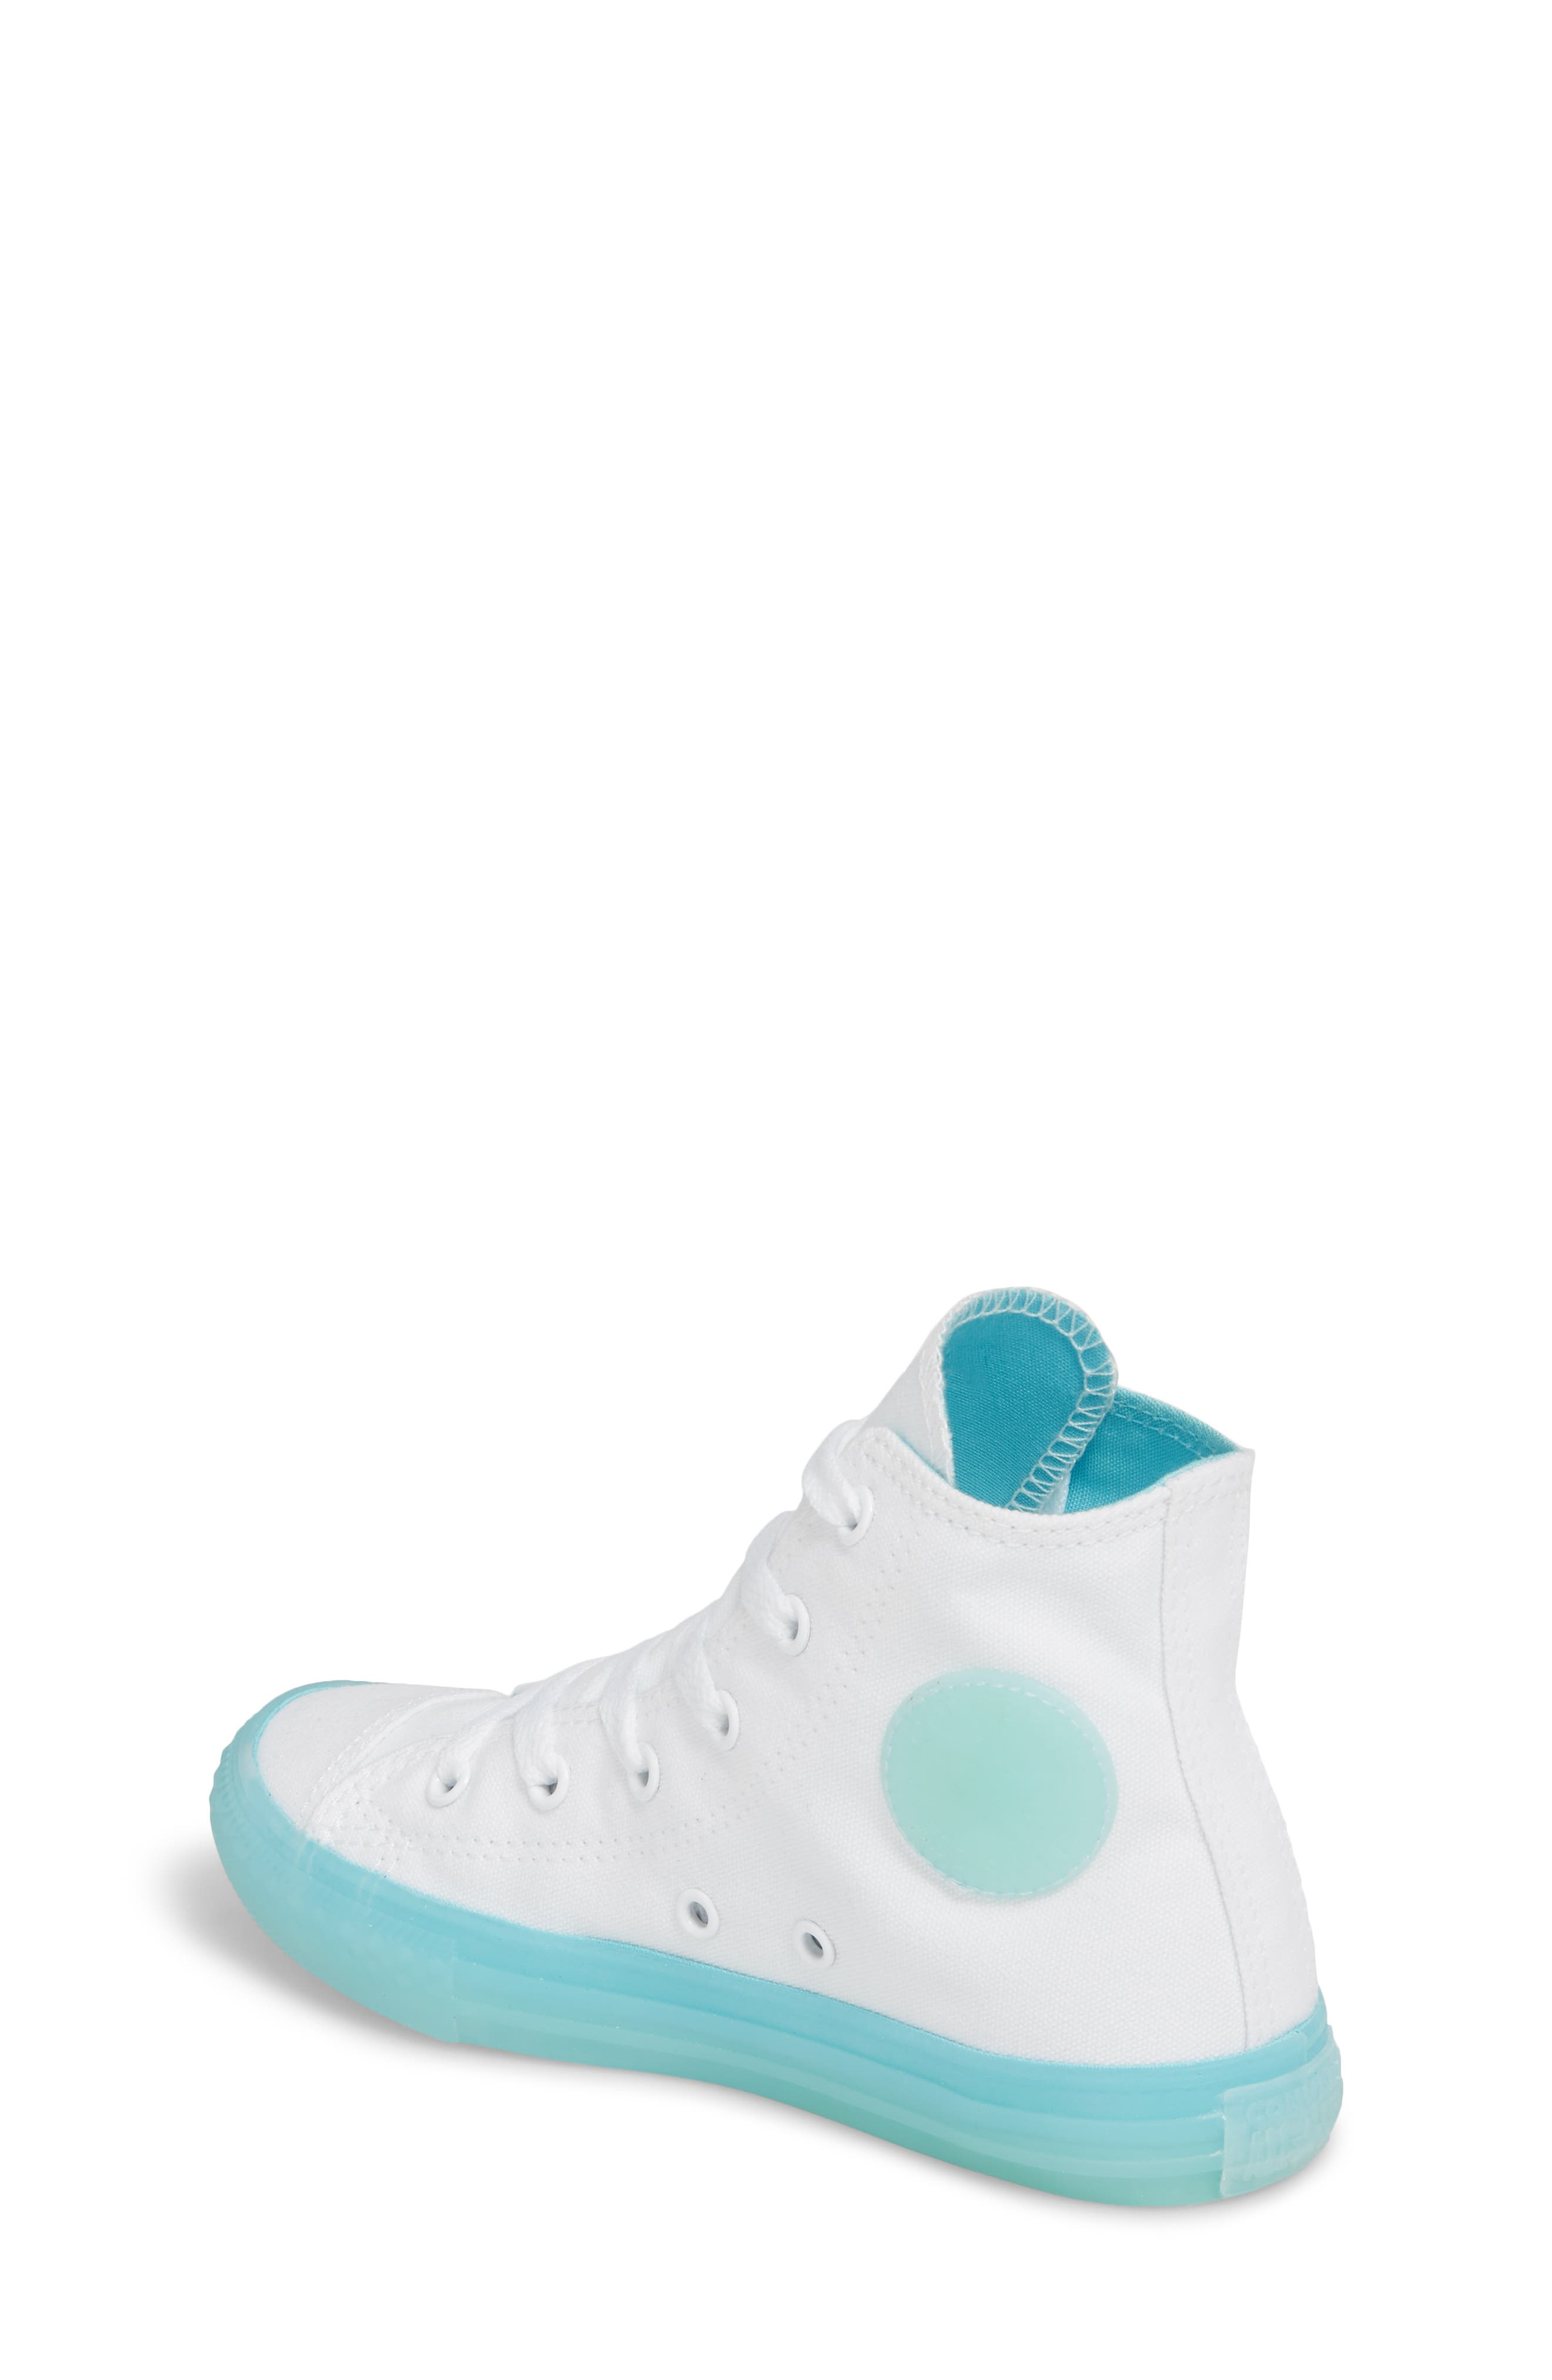 Chuck Taylor<sup>®</sup> All Star<sup>®</sup> Jelly High Top Sneaker,                             Alternate thumbnail 2, color,                             405